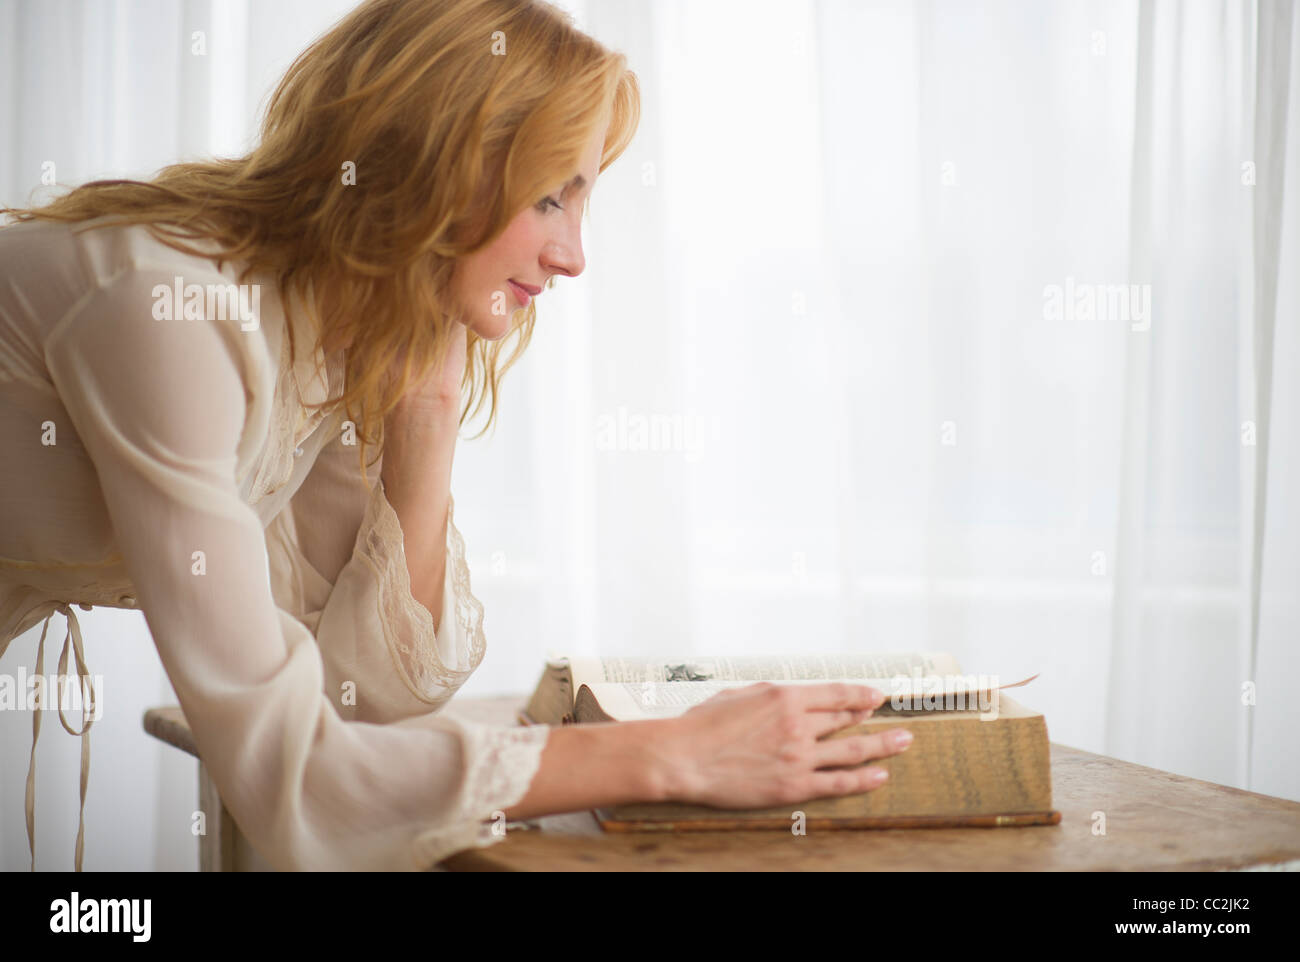 USA, New Jersey, Jersey City, Woman reading antique book - Stock Image